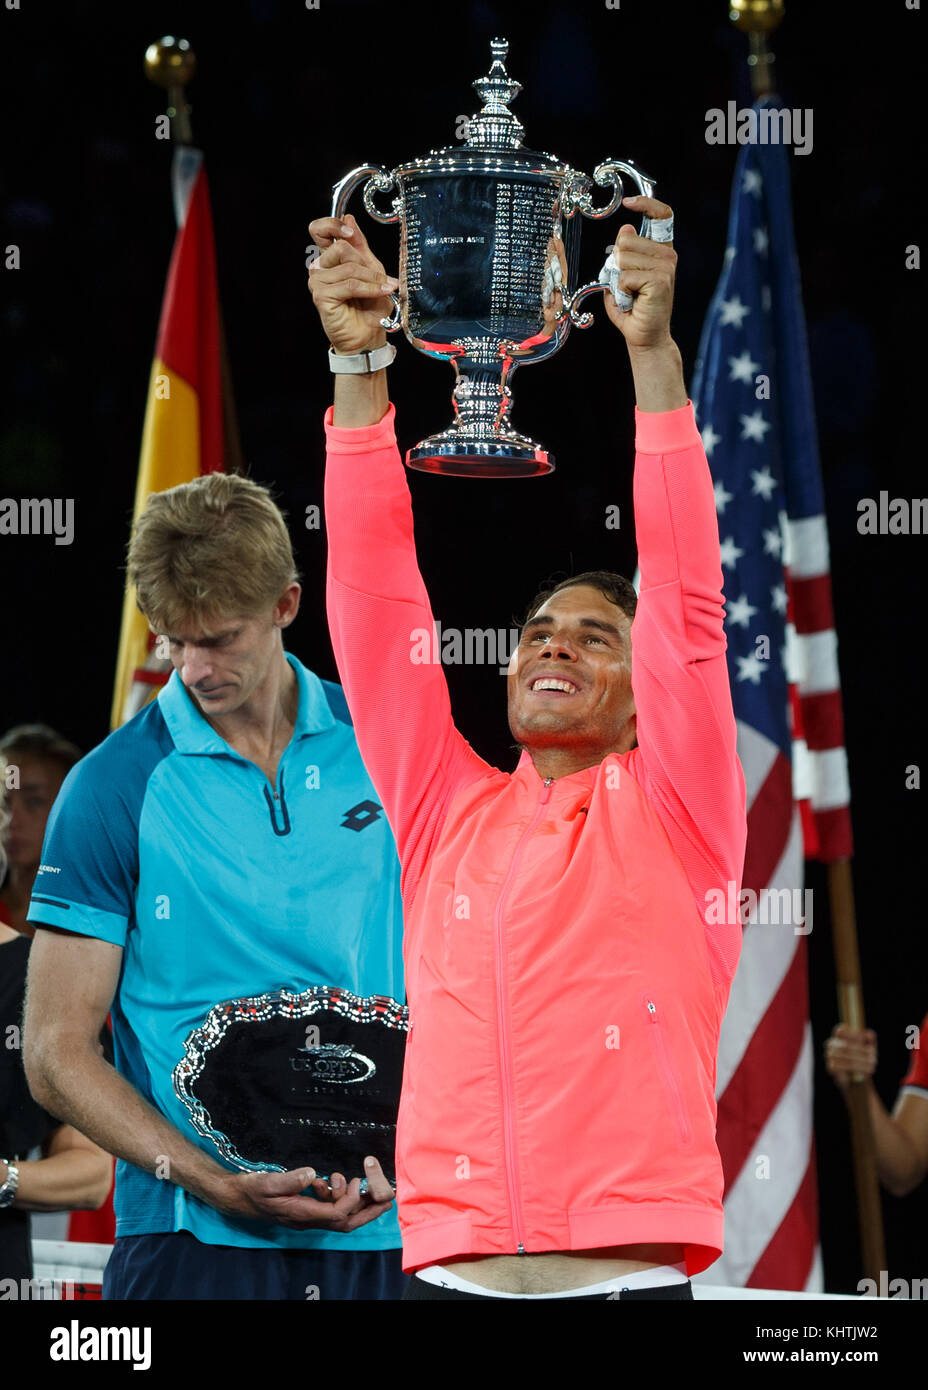 Spanish tennis player Rafael Nadal with the US Open 2017 Trophy after beating Kevin Anderson in the men's final, - Stock Image